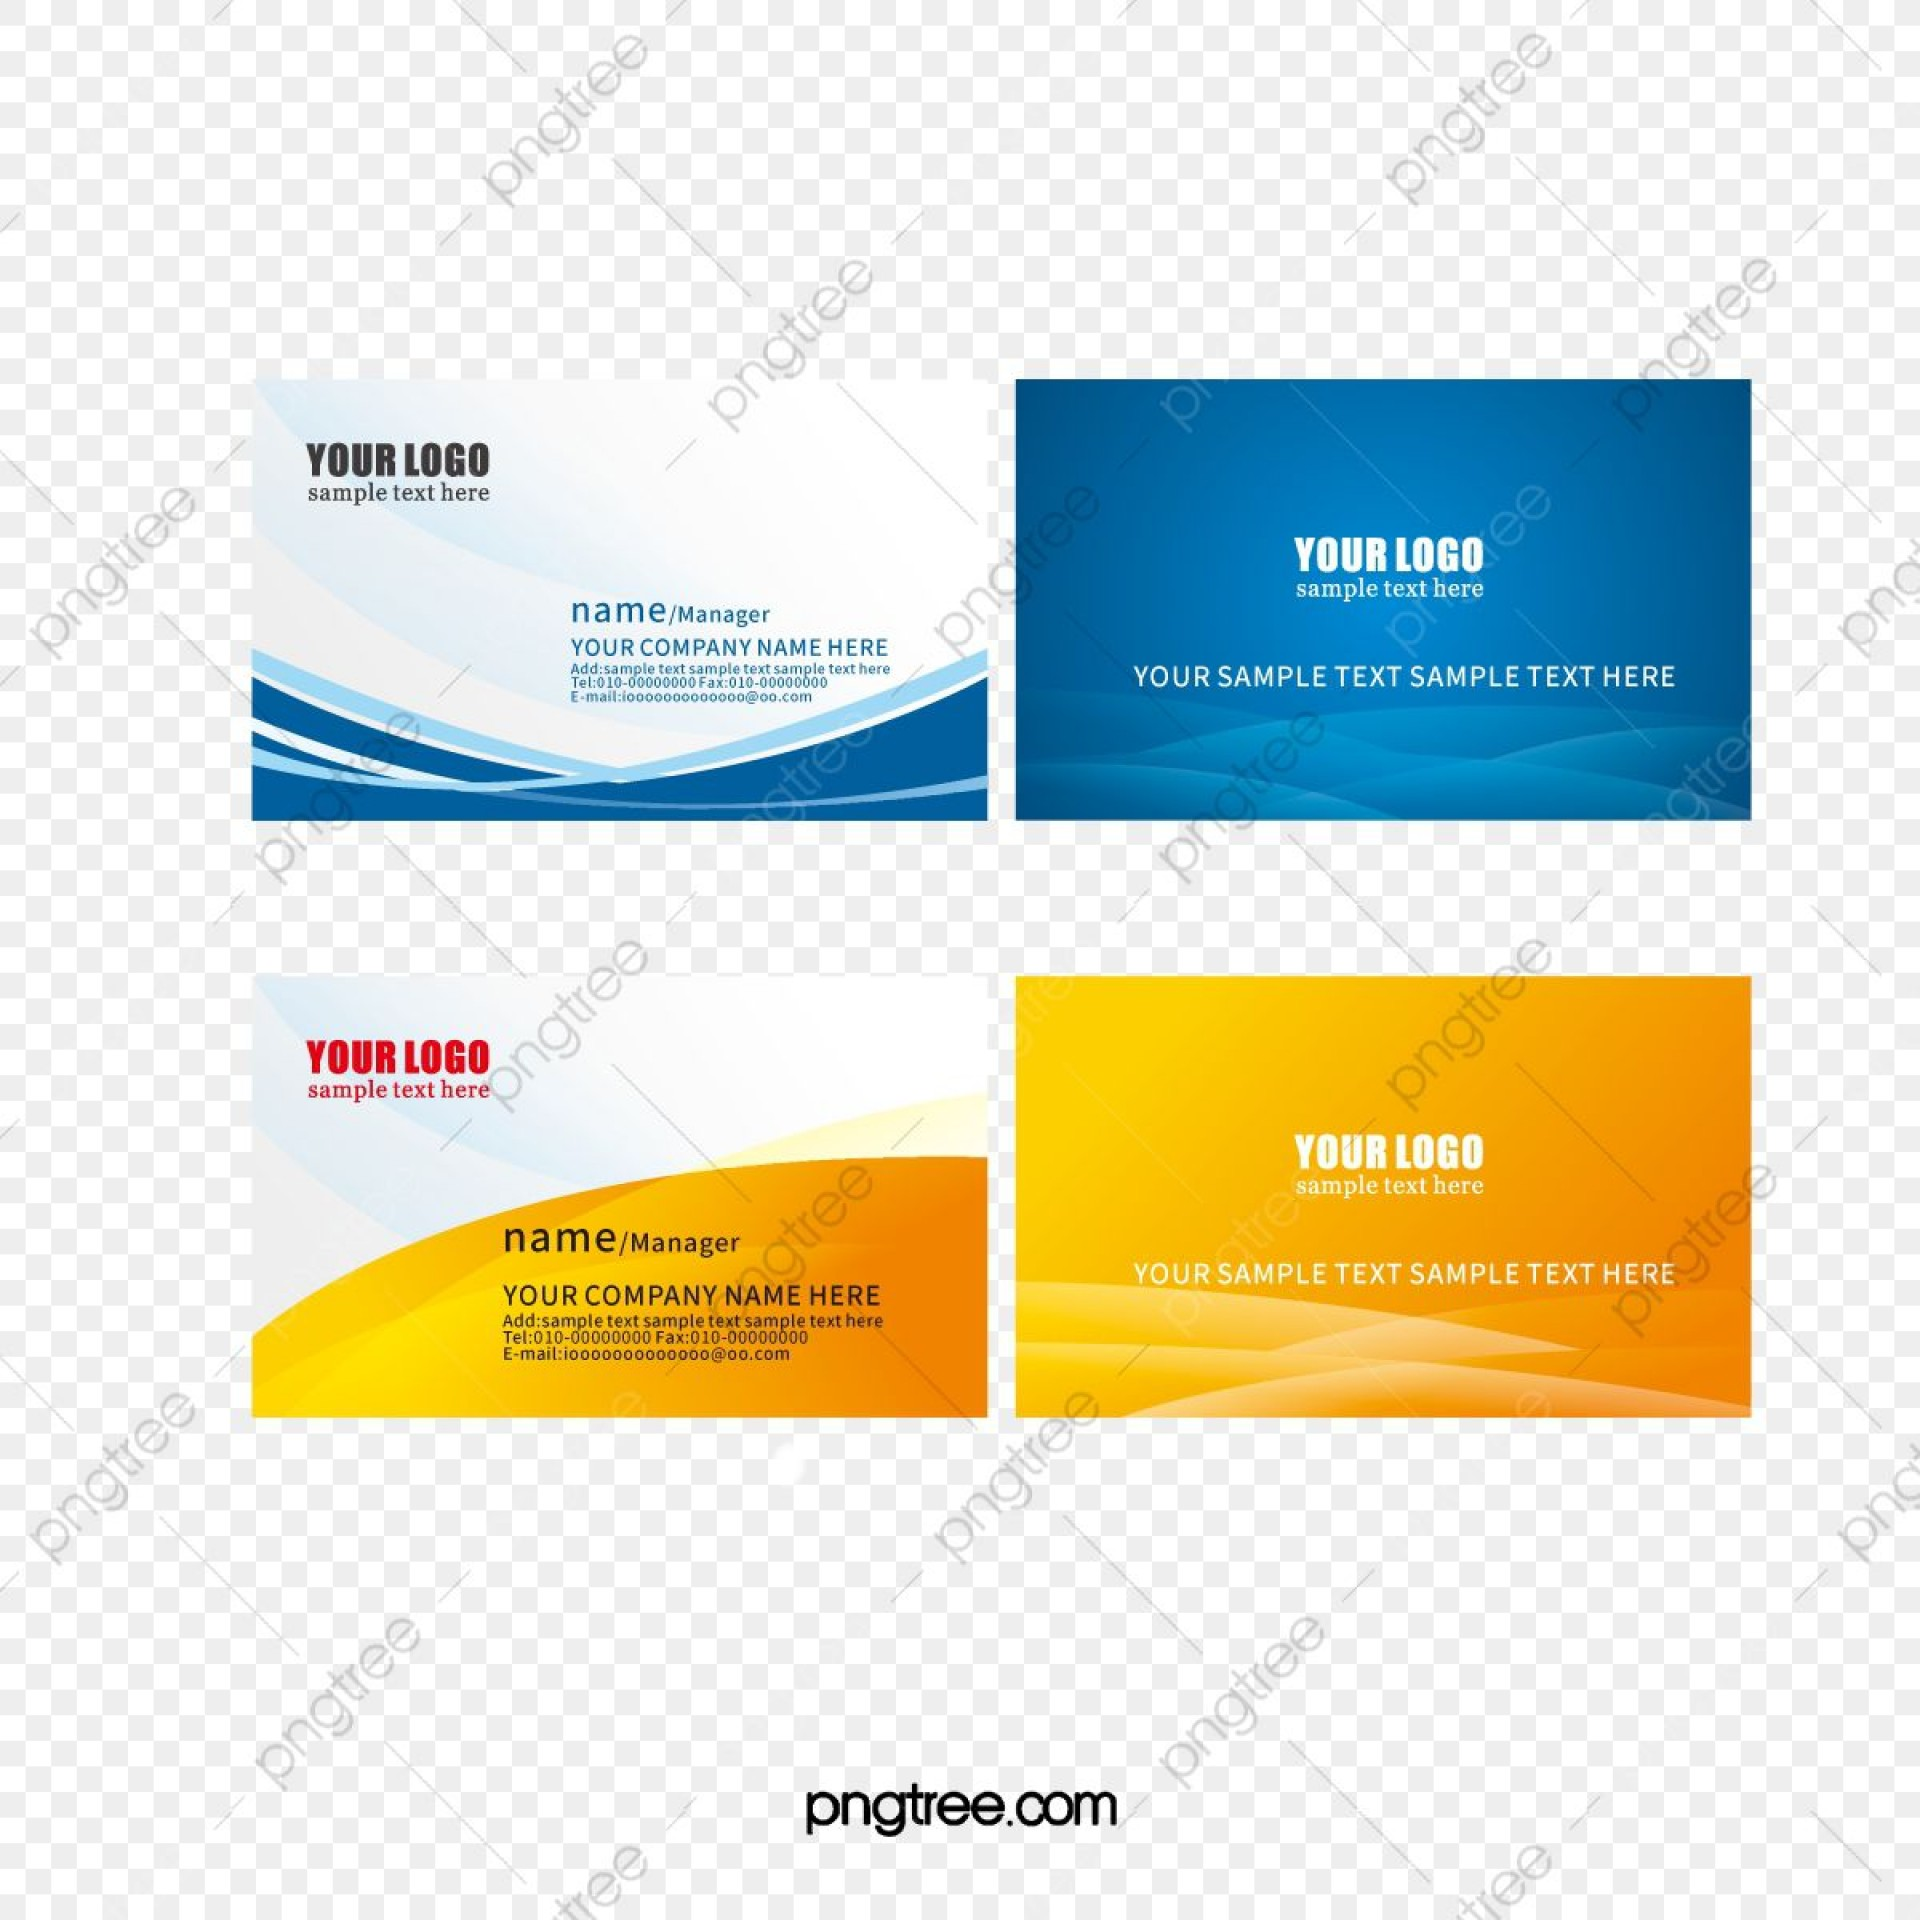 007 Unique Free Download Busines Card Template High Resolution  Templates Blank Microsoft Word1920